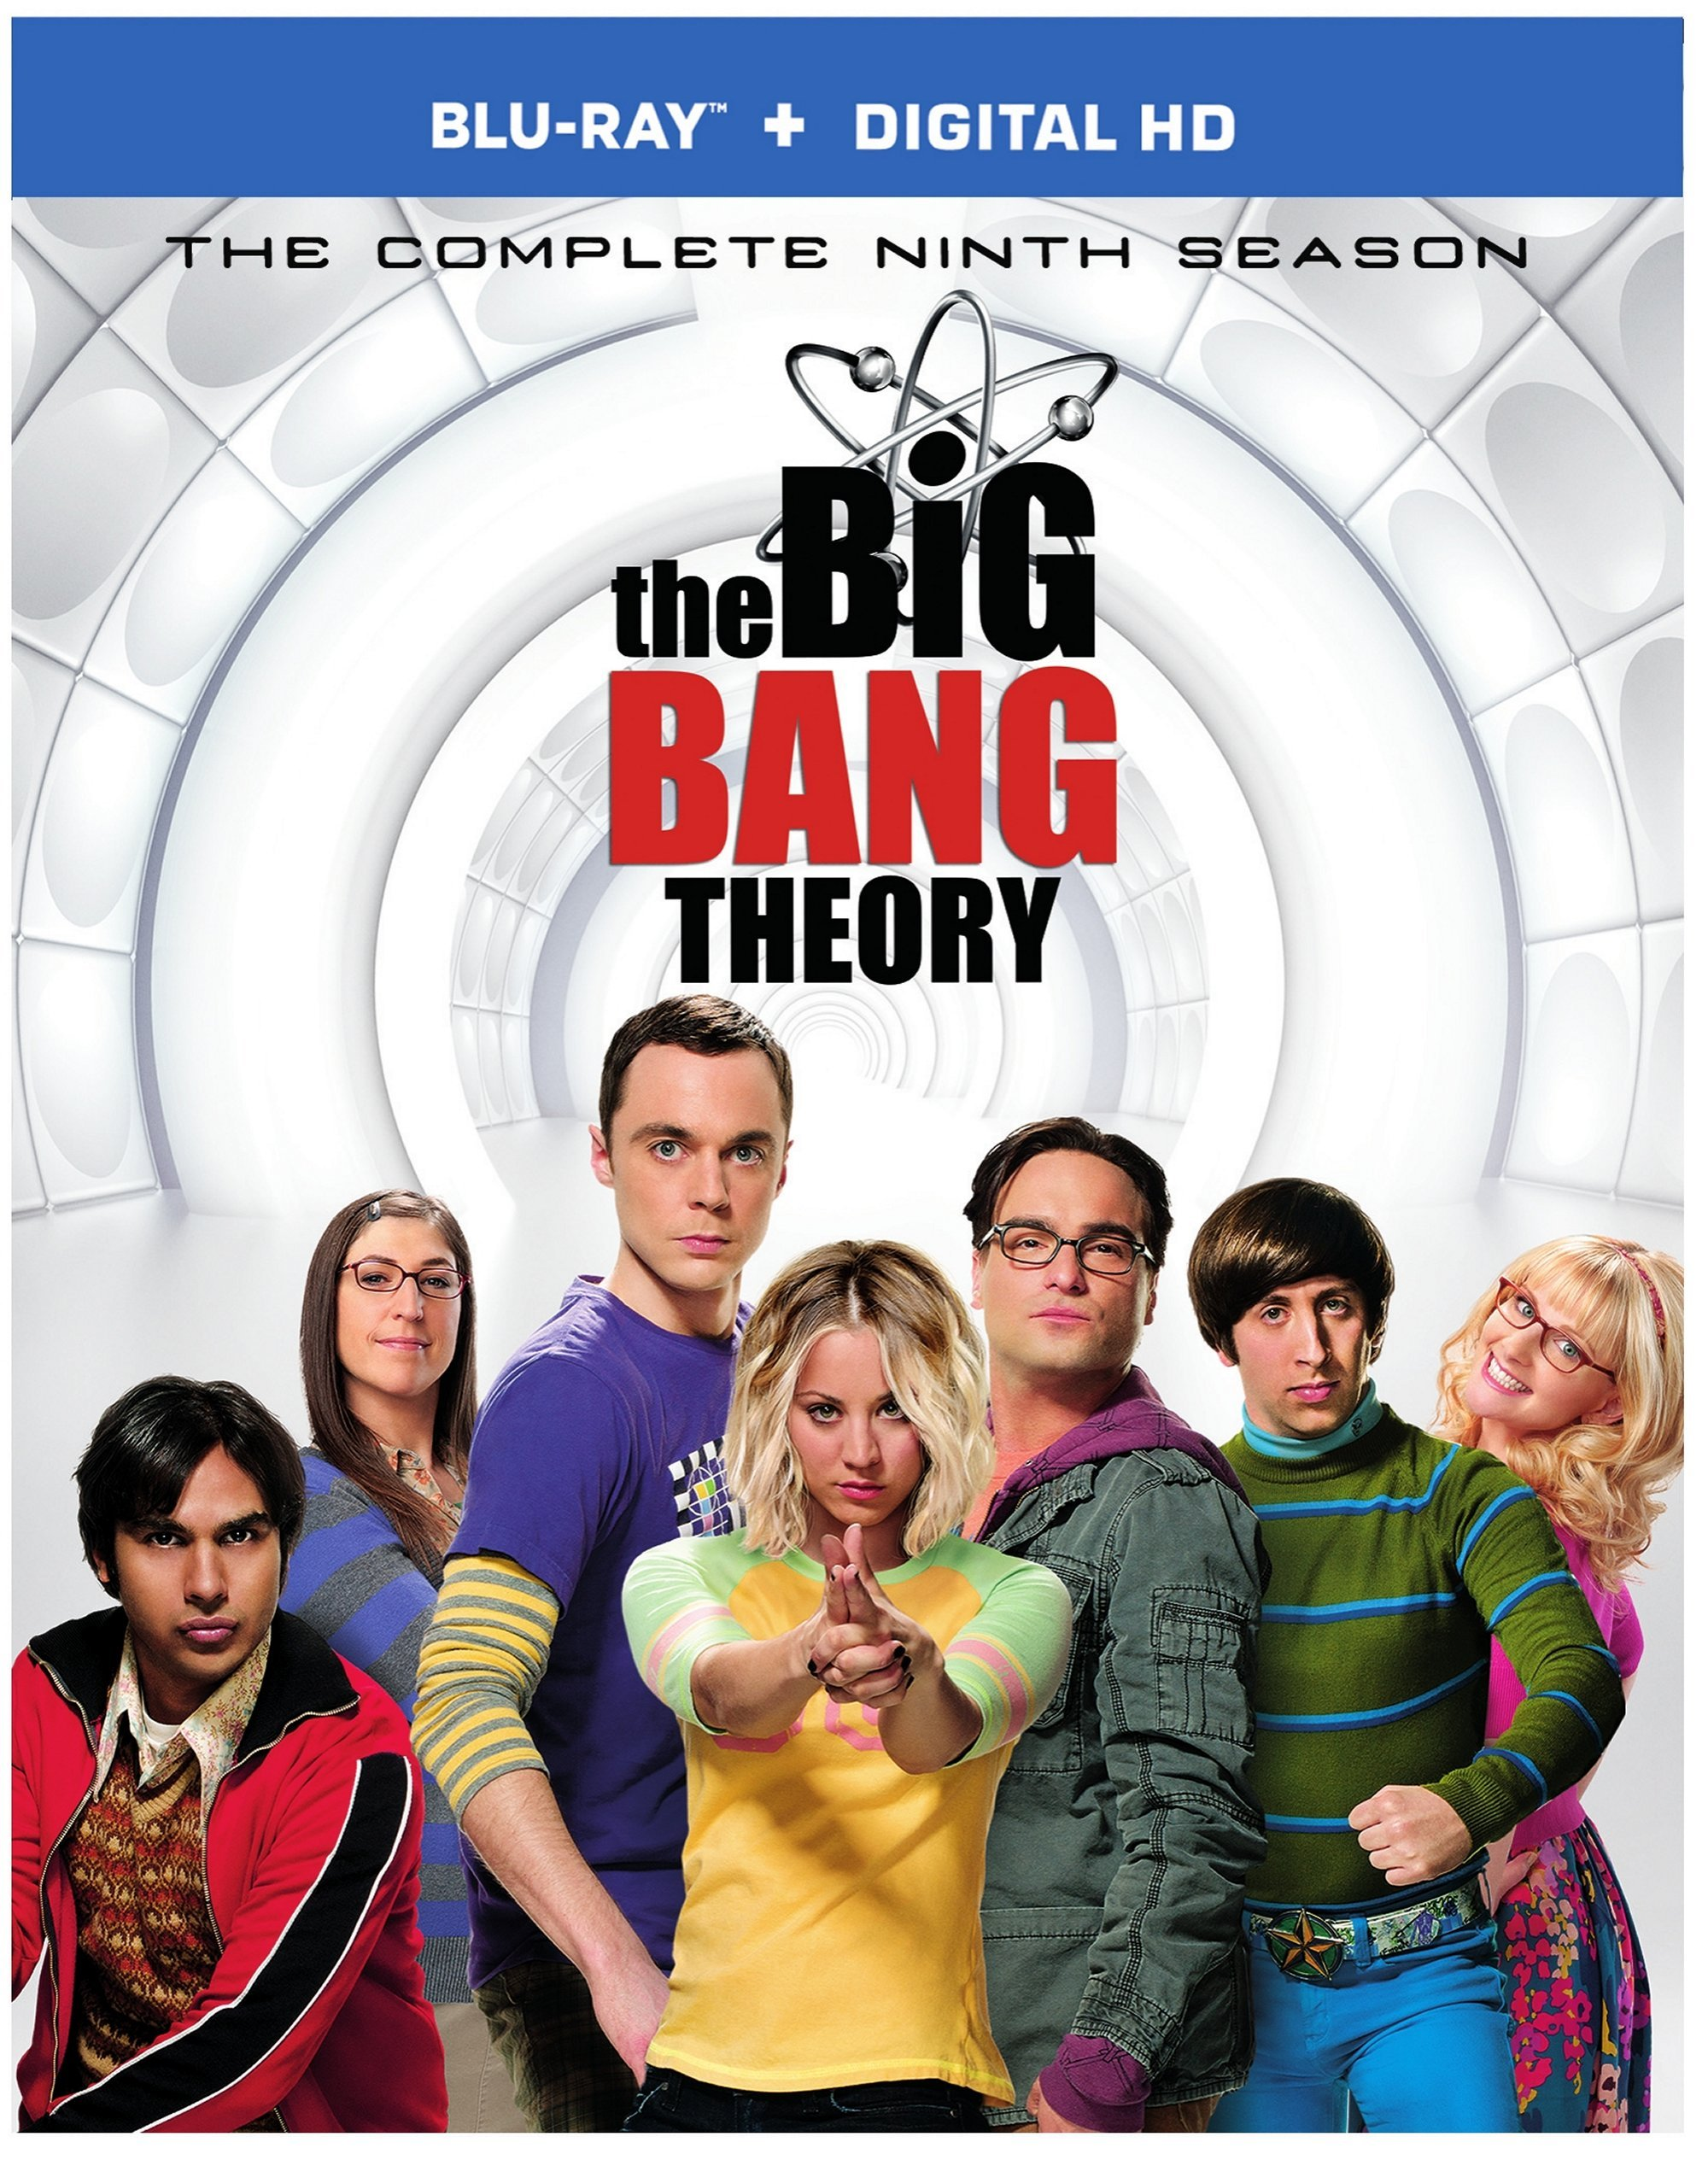 Blu-ray : The Big Bang Theory: The Complete Ninth Season (Dolby, AC-3, , Slipsleeve Packaging, 2 Pack)